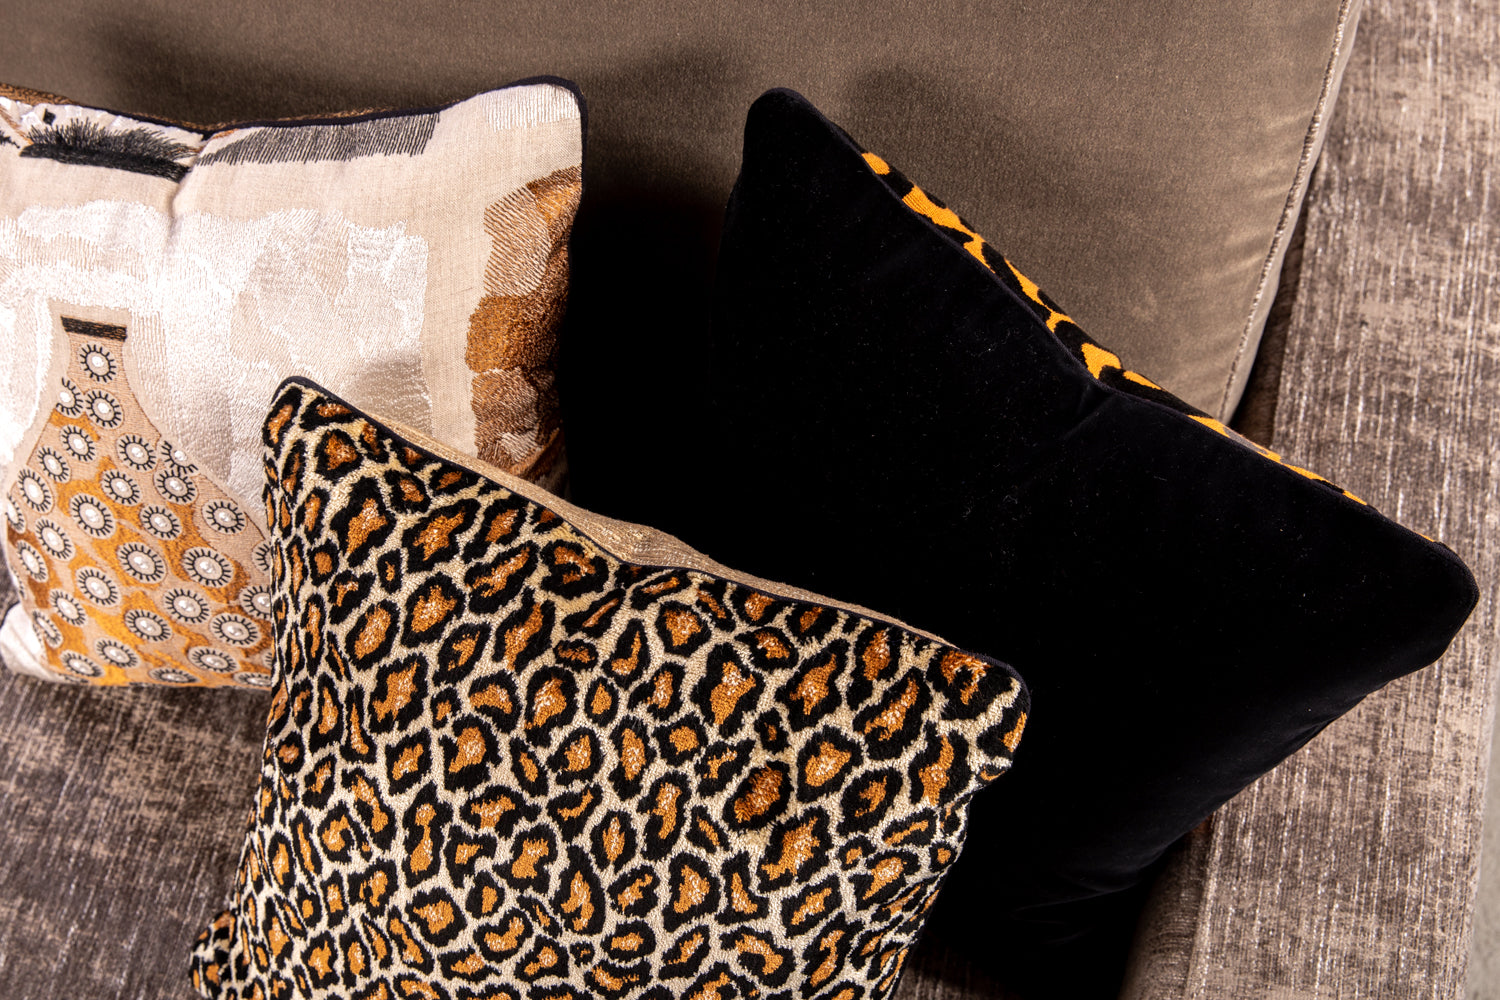 ffabb toss pillows, RADG & Maxwell fabrics, velvet animal print